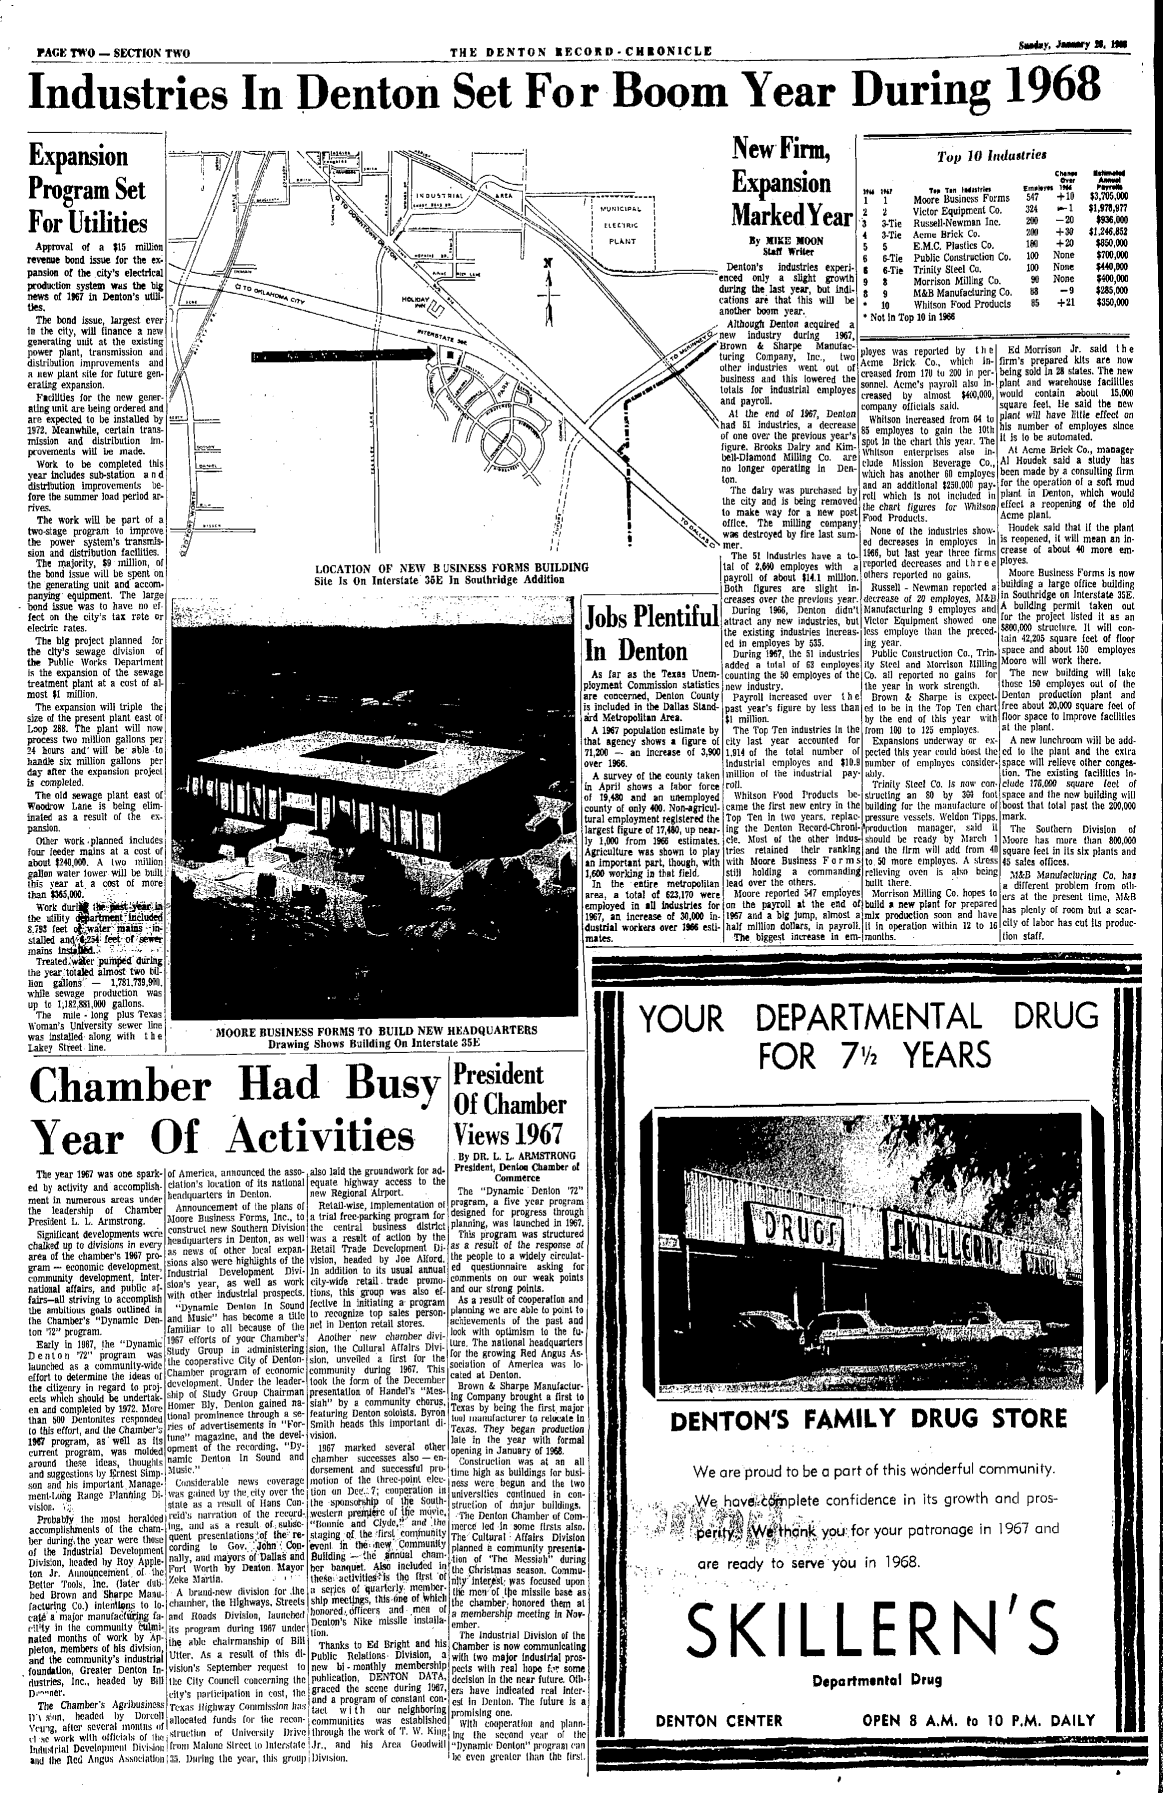 Industries in Denton Set for Boom Year During 1968